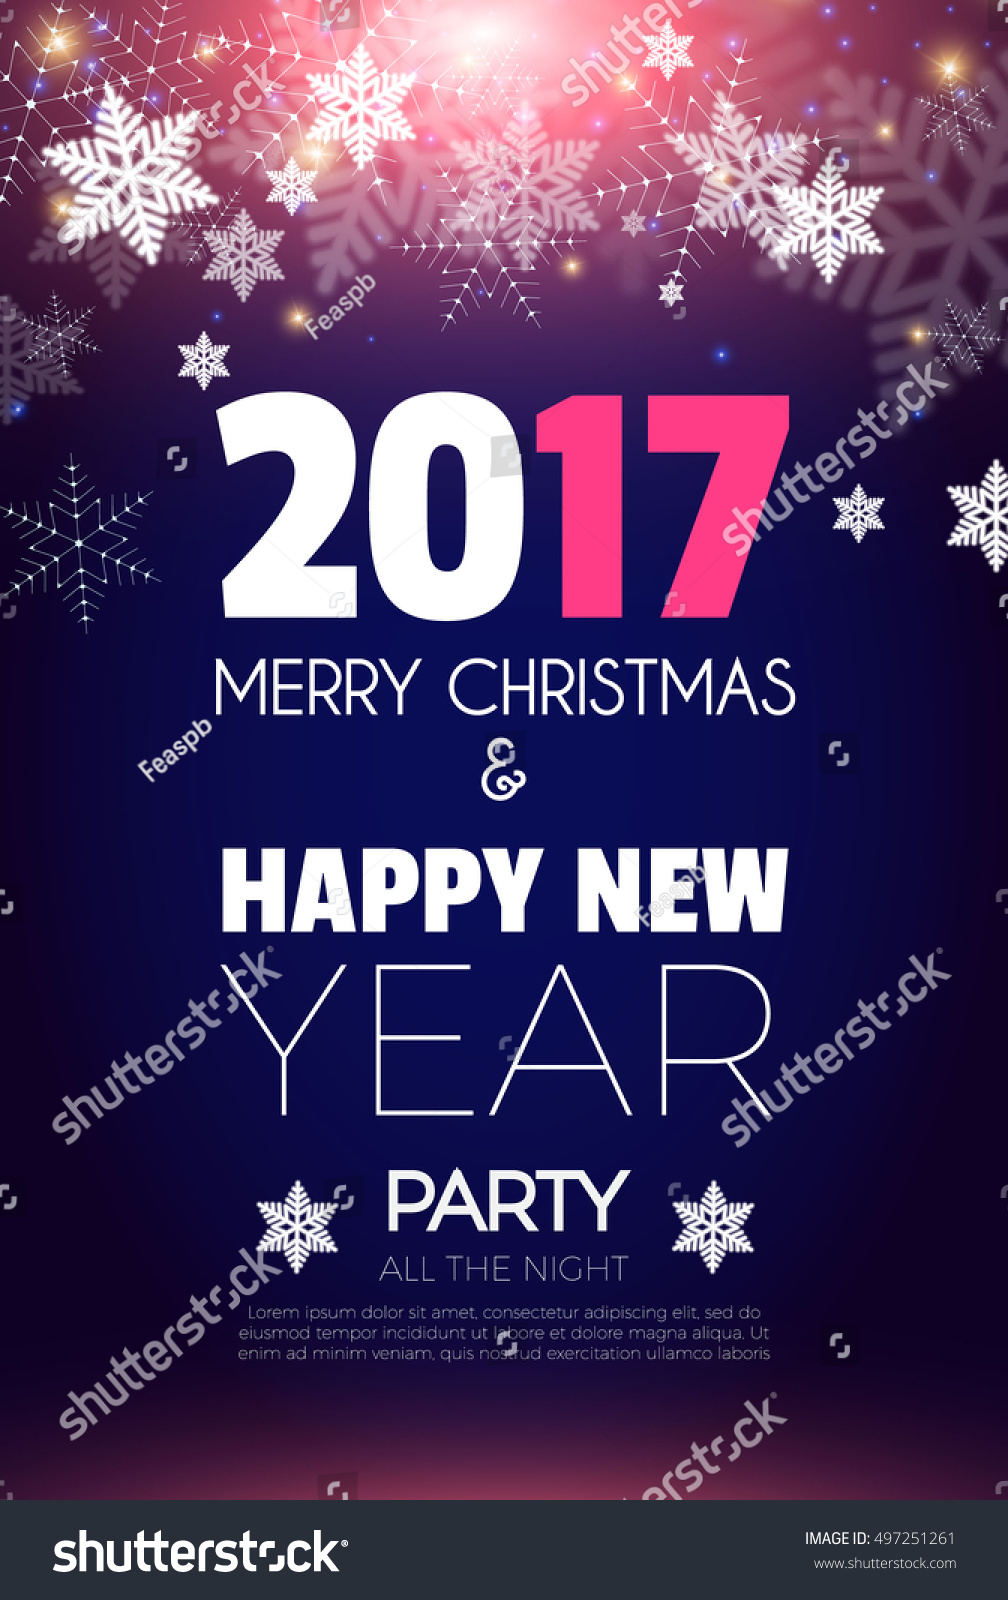 New Years Day Party Invitation christmas wishes quotes for friends